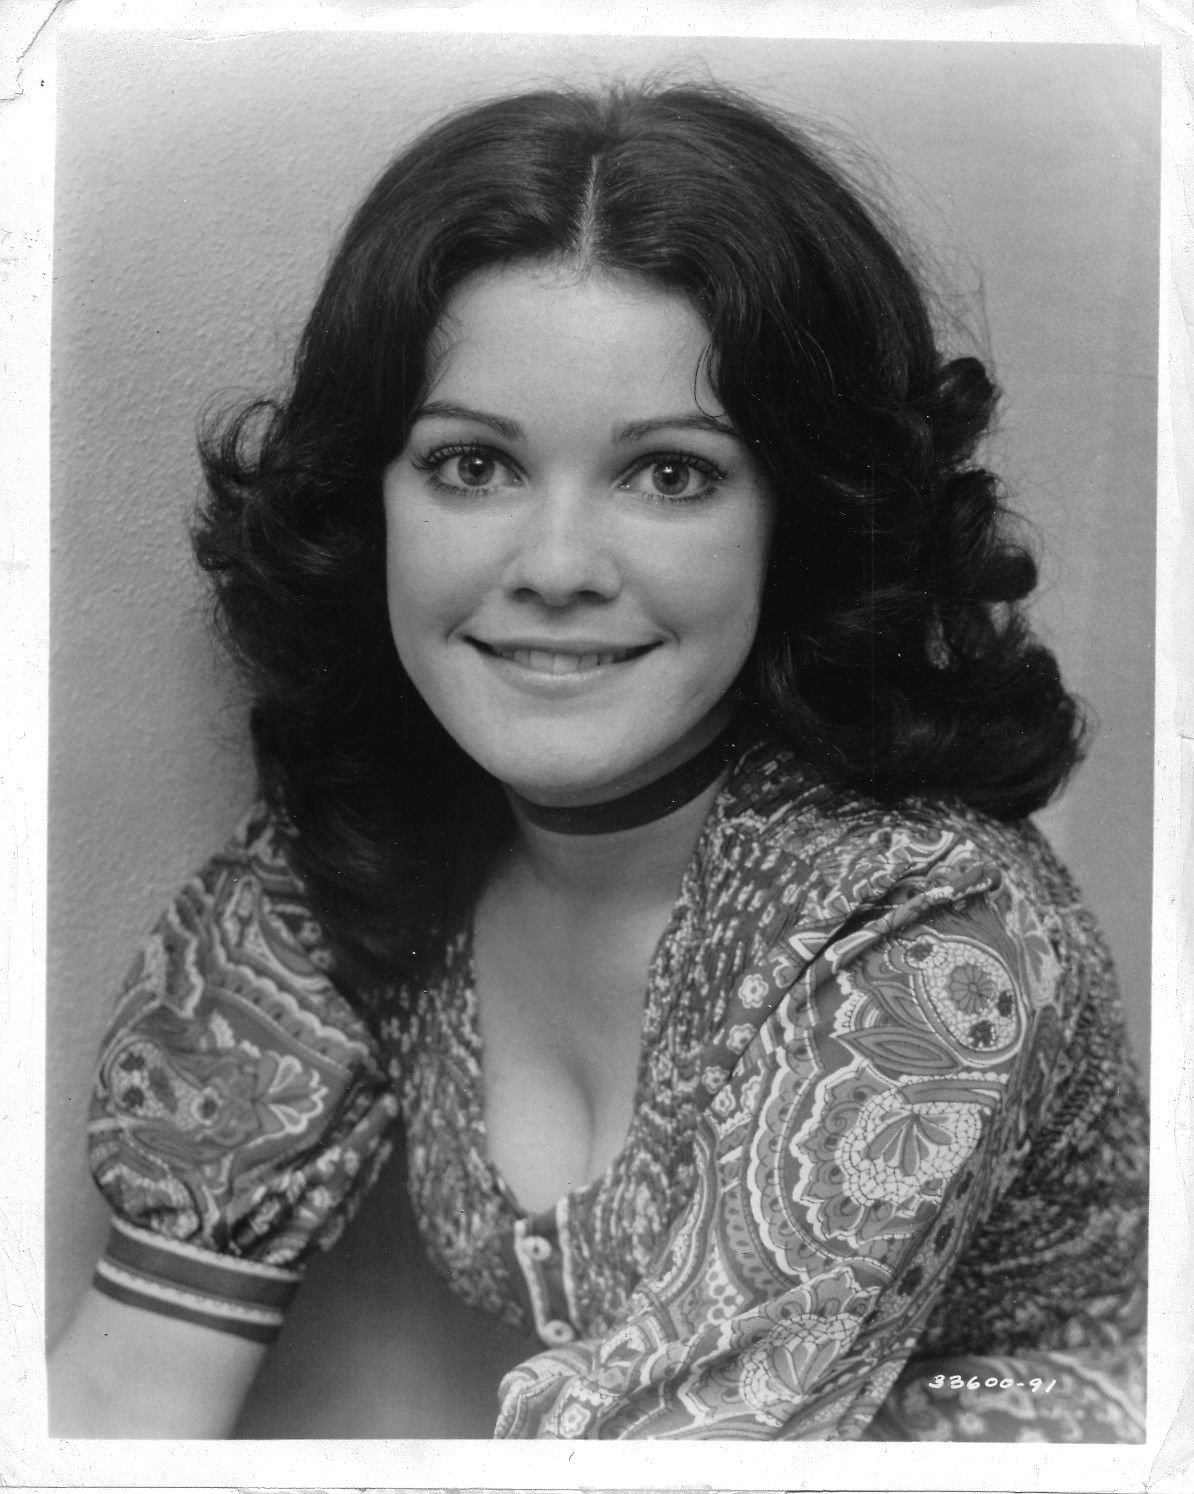 Julie Cobb (born May 29, 1947) is a longtime American